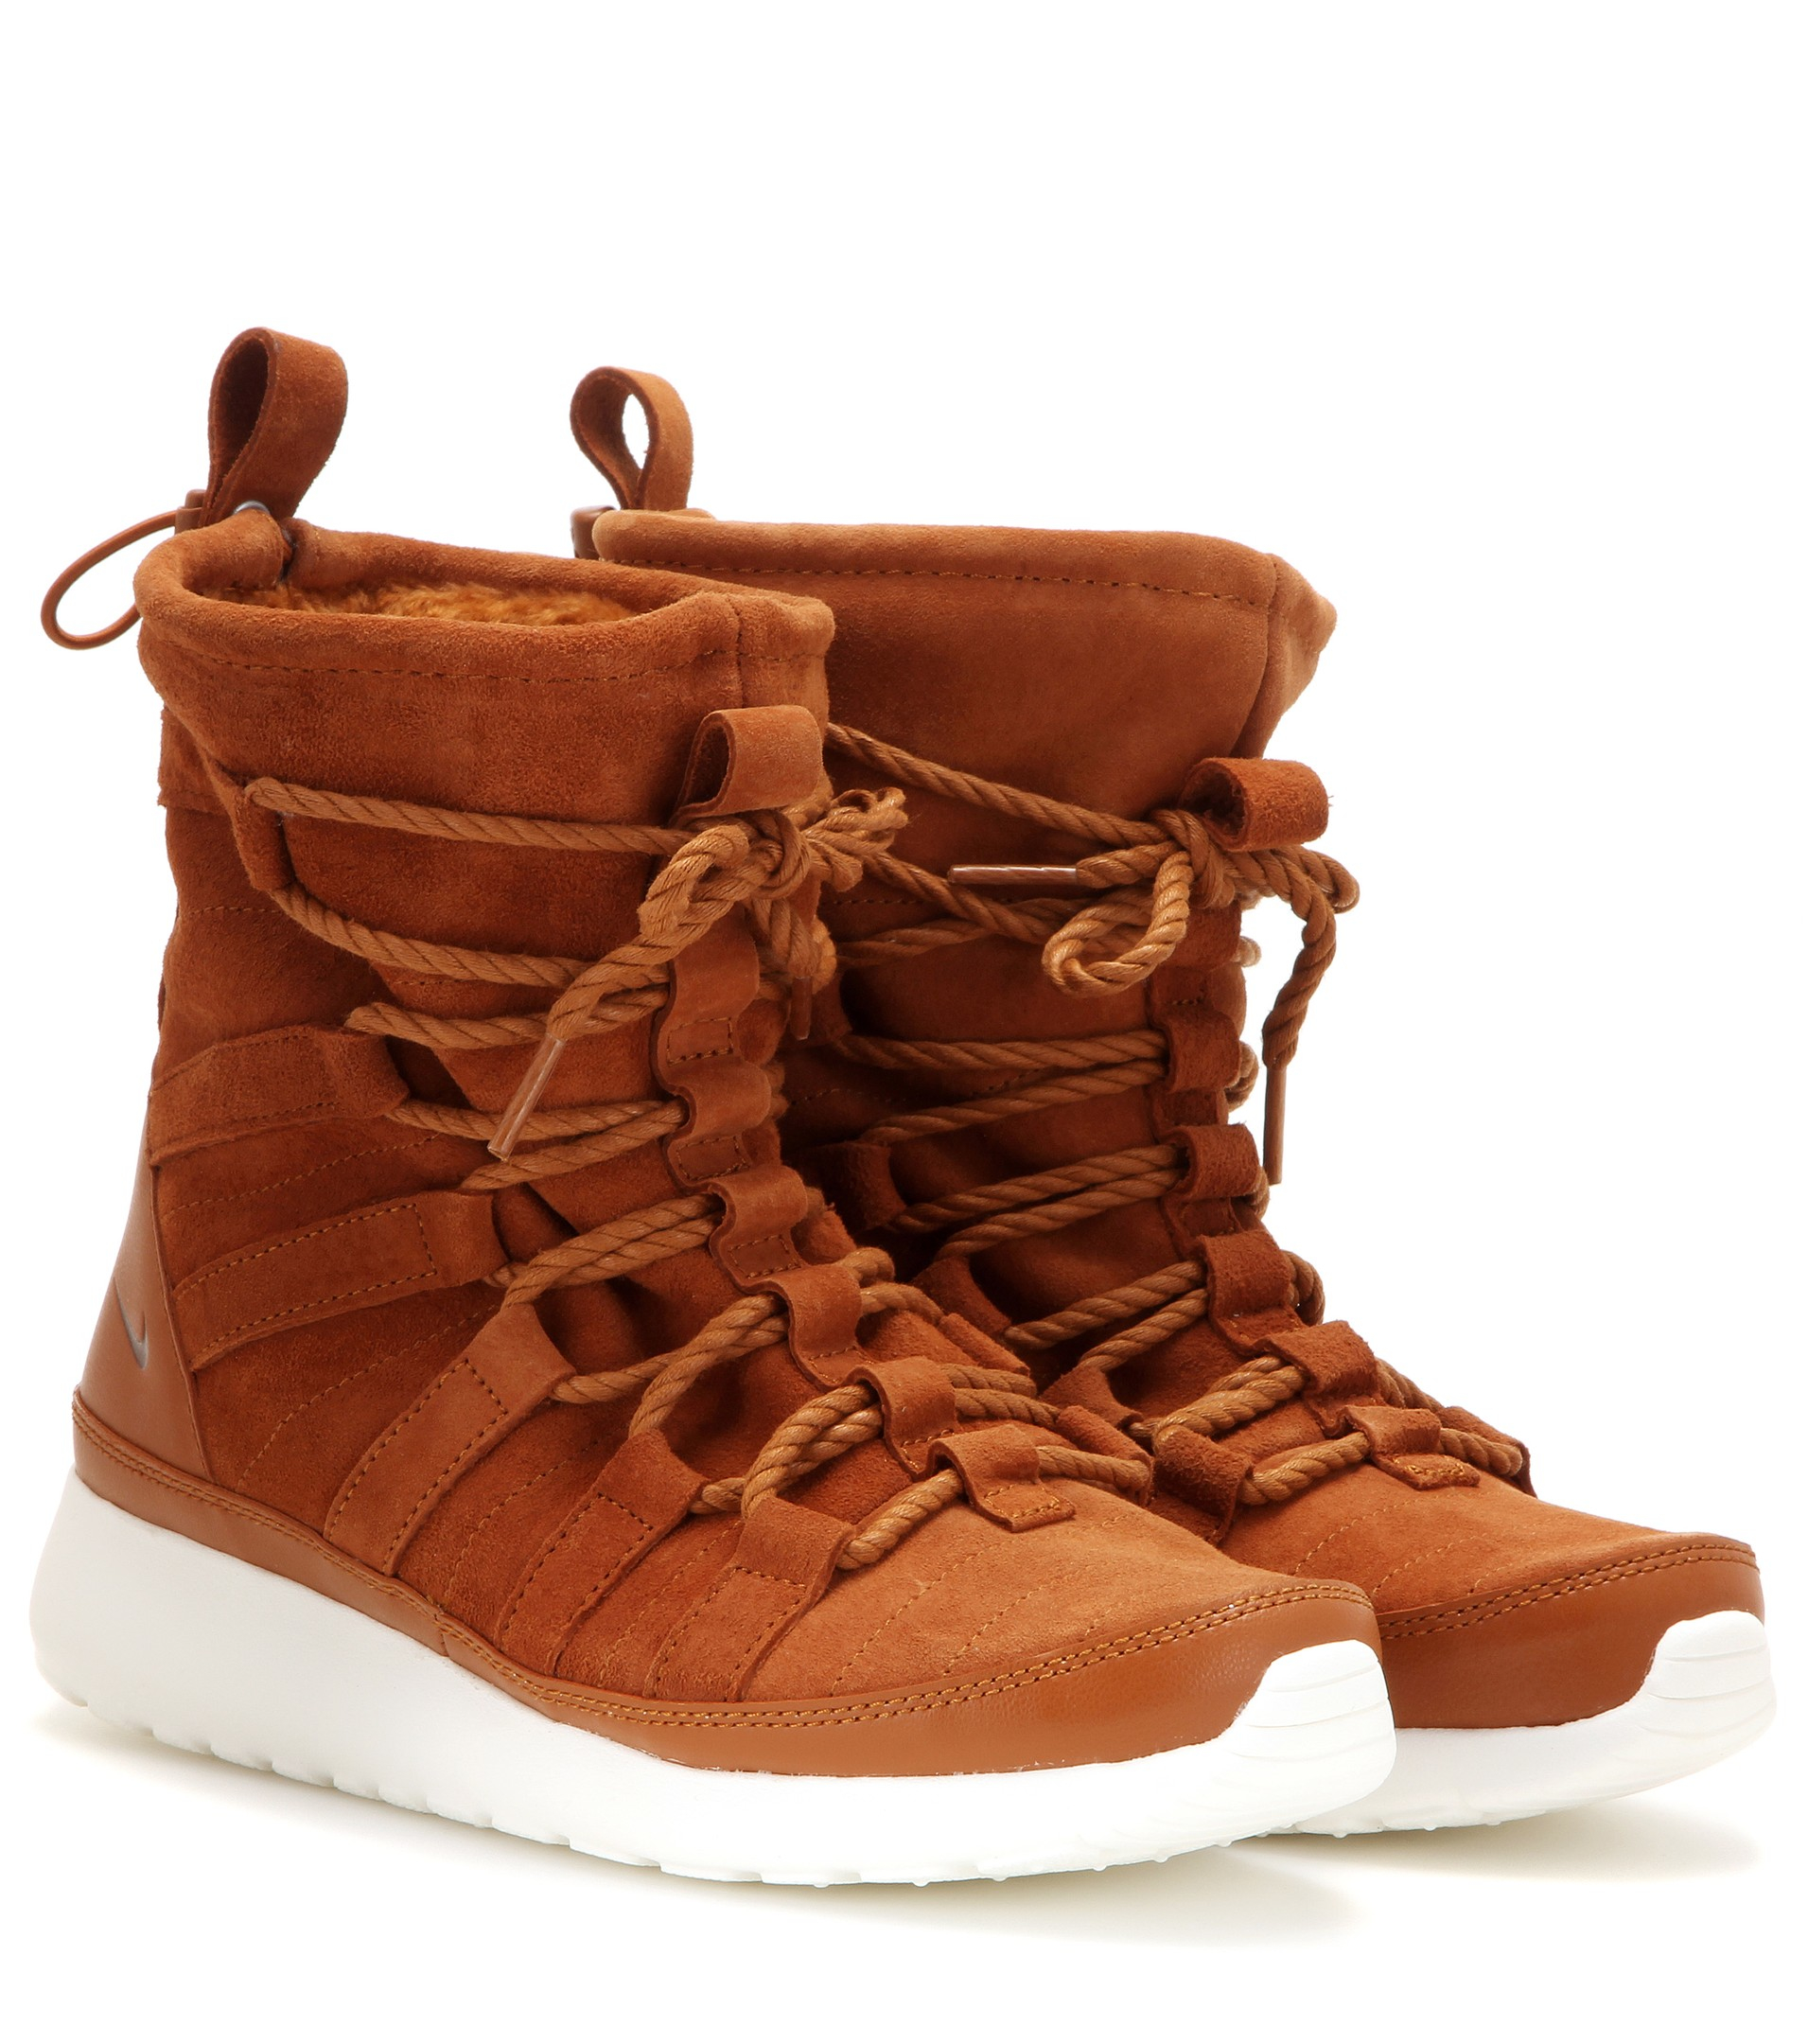 sneakers for cheap ab5ff 1a331 Women's Brown Roshe One Hi Suede Sneaker Boots